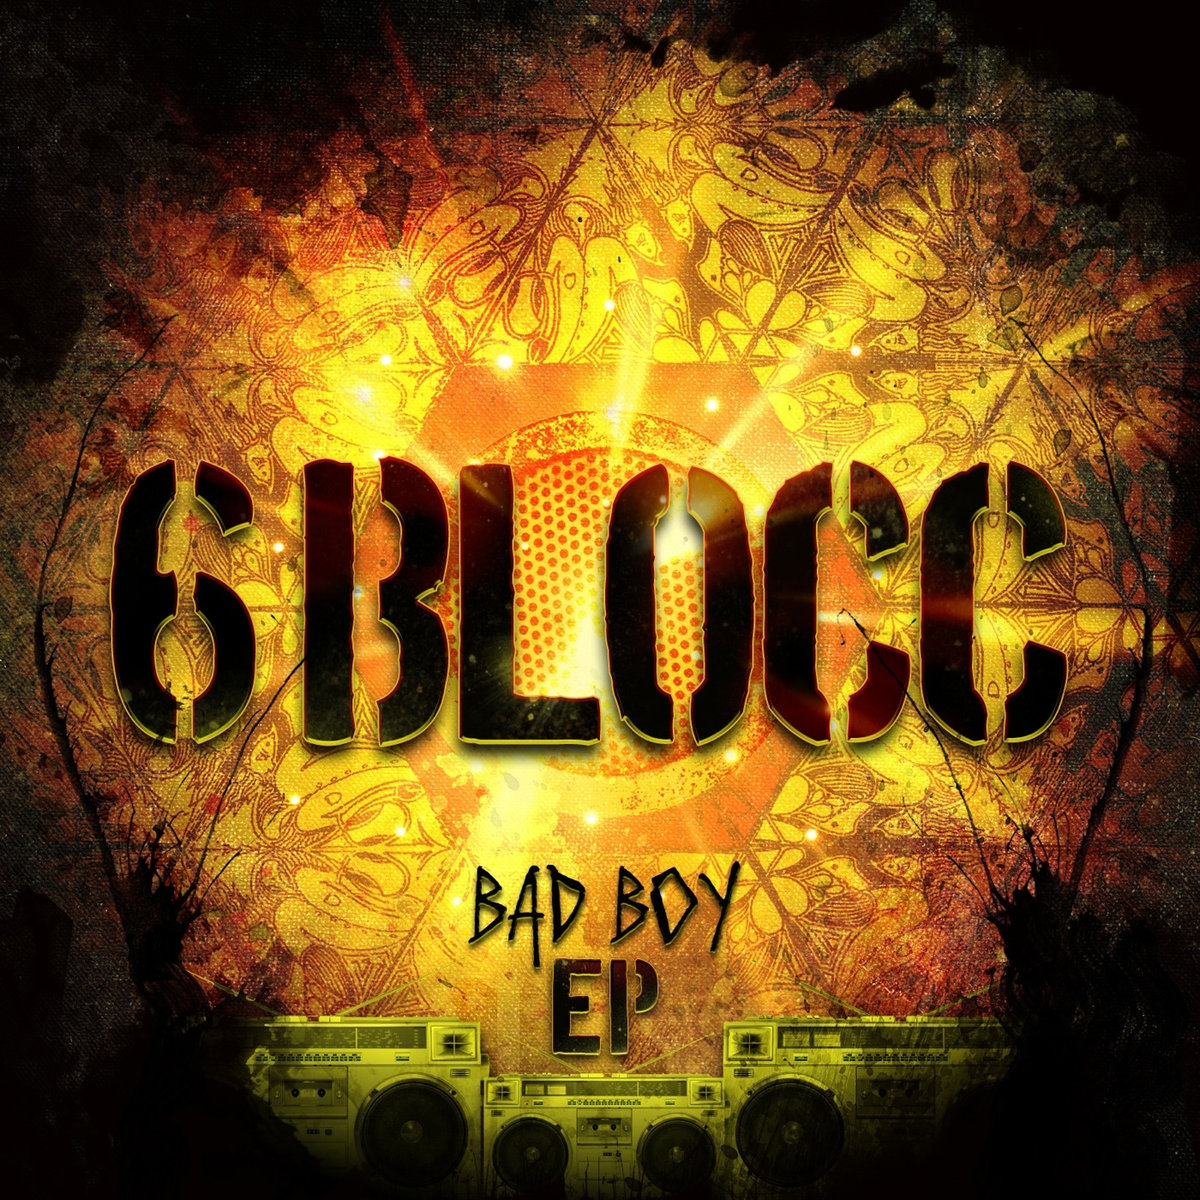 6Blocc - Bad Boy (artwork)